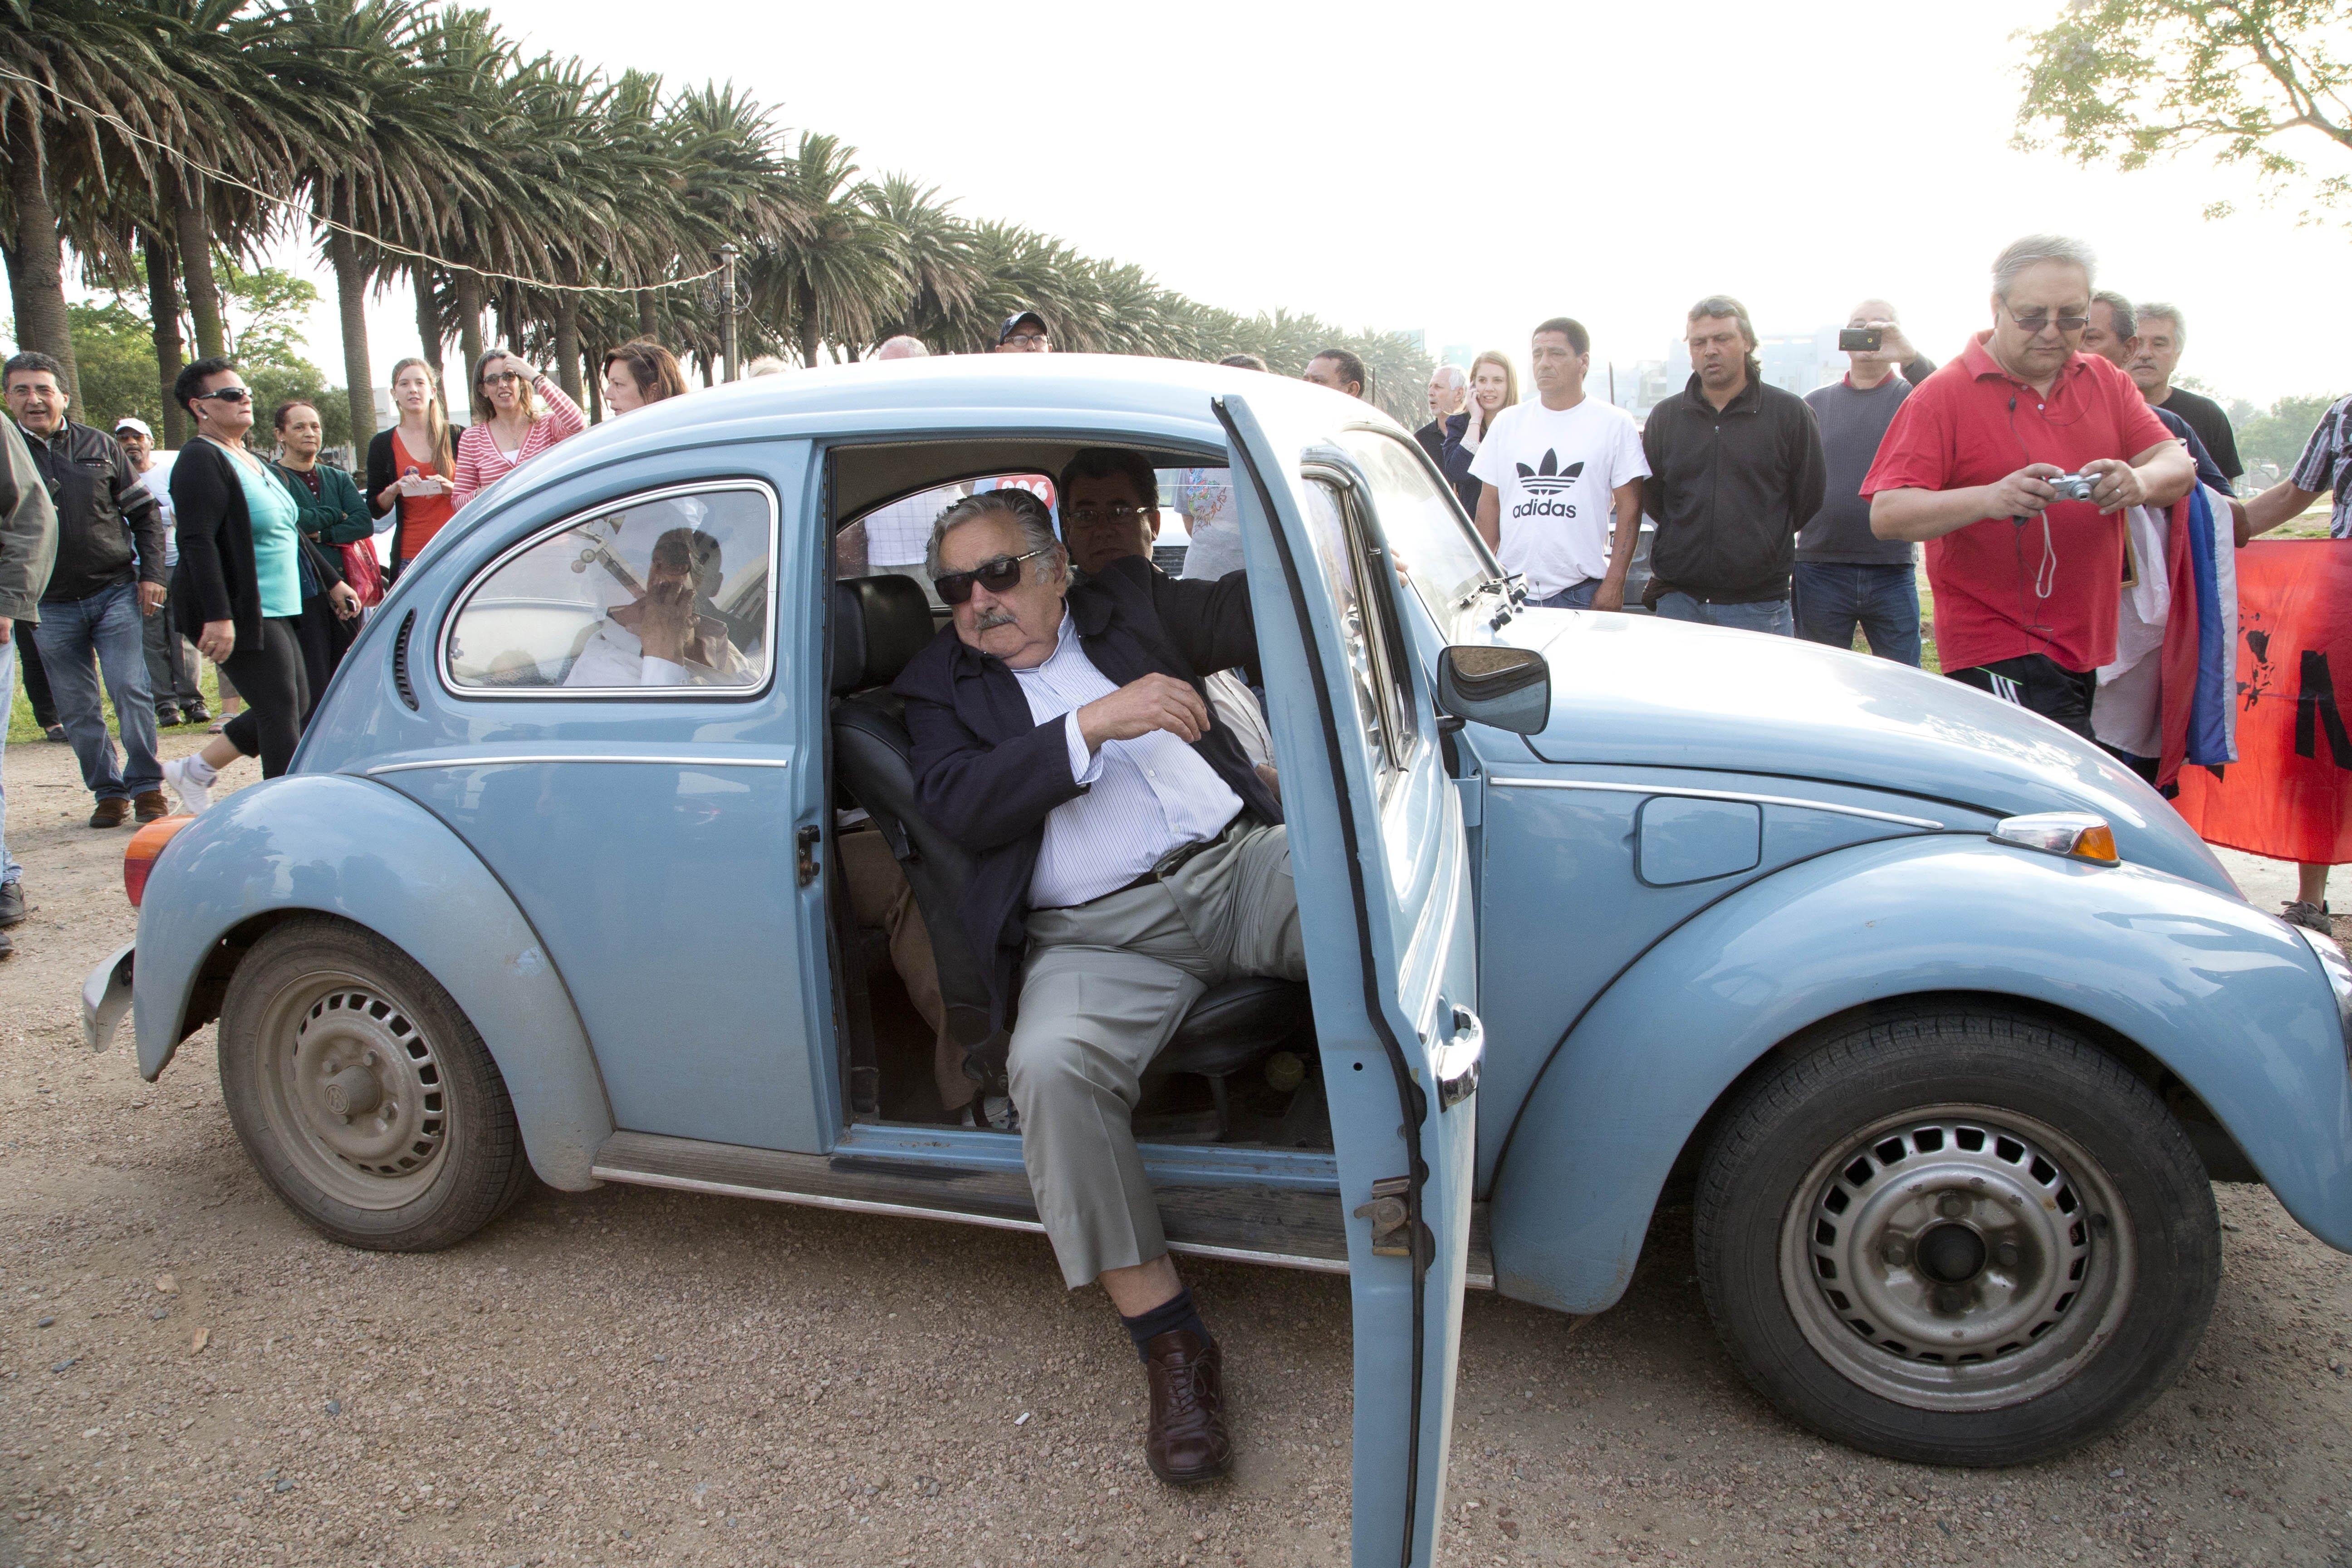 The President Of Uruguay Picks Up A Hitchhiker And It Doesnt Surprise Us uruguay mujica offer buy beetle 4973e3fa1fbffdf6c01799ec4b7e7131